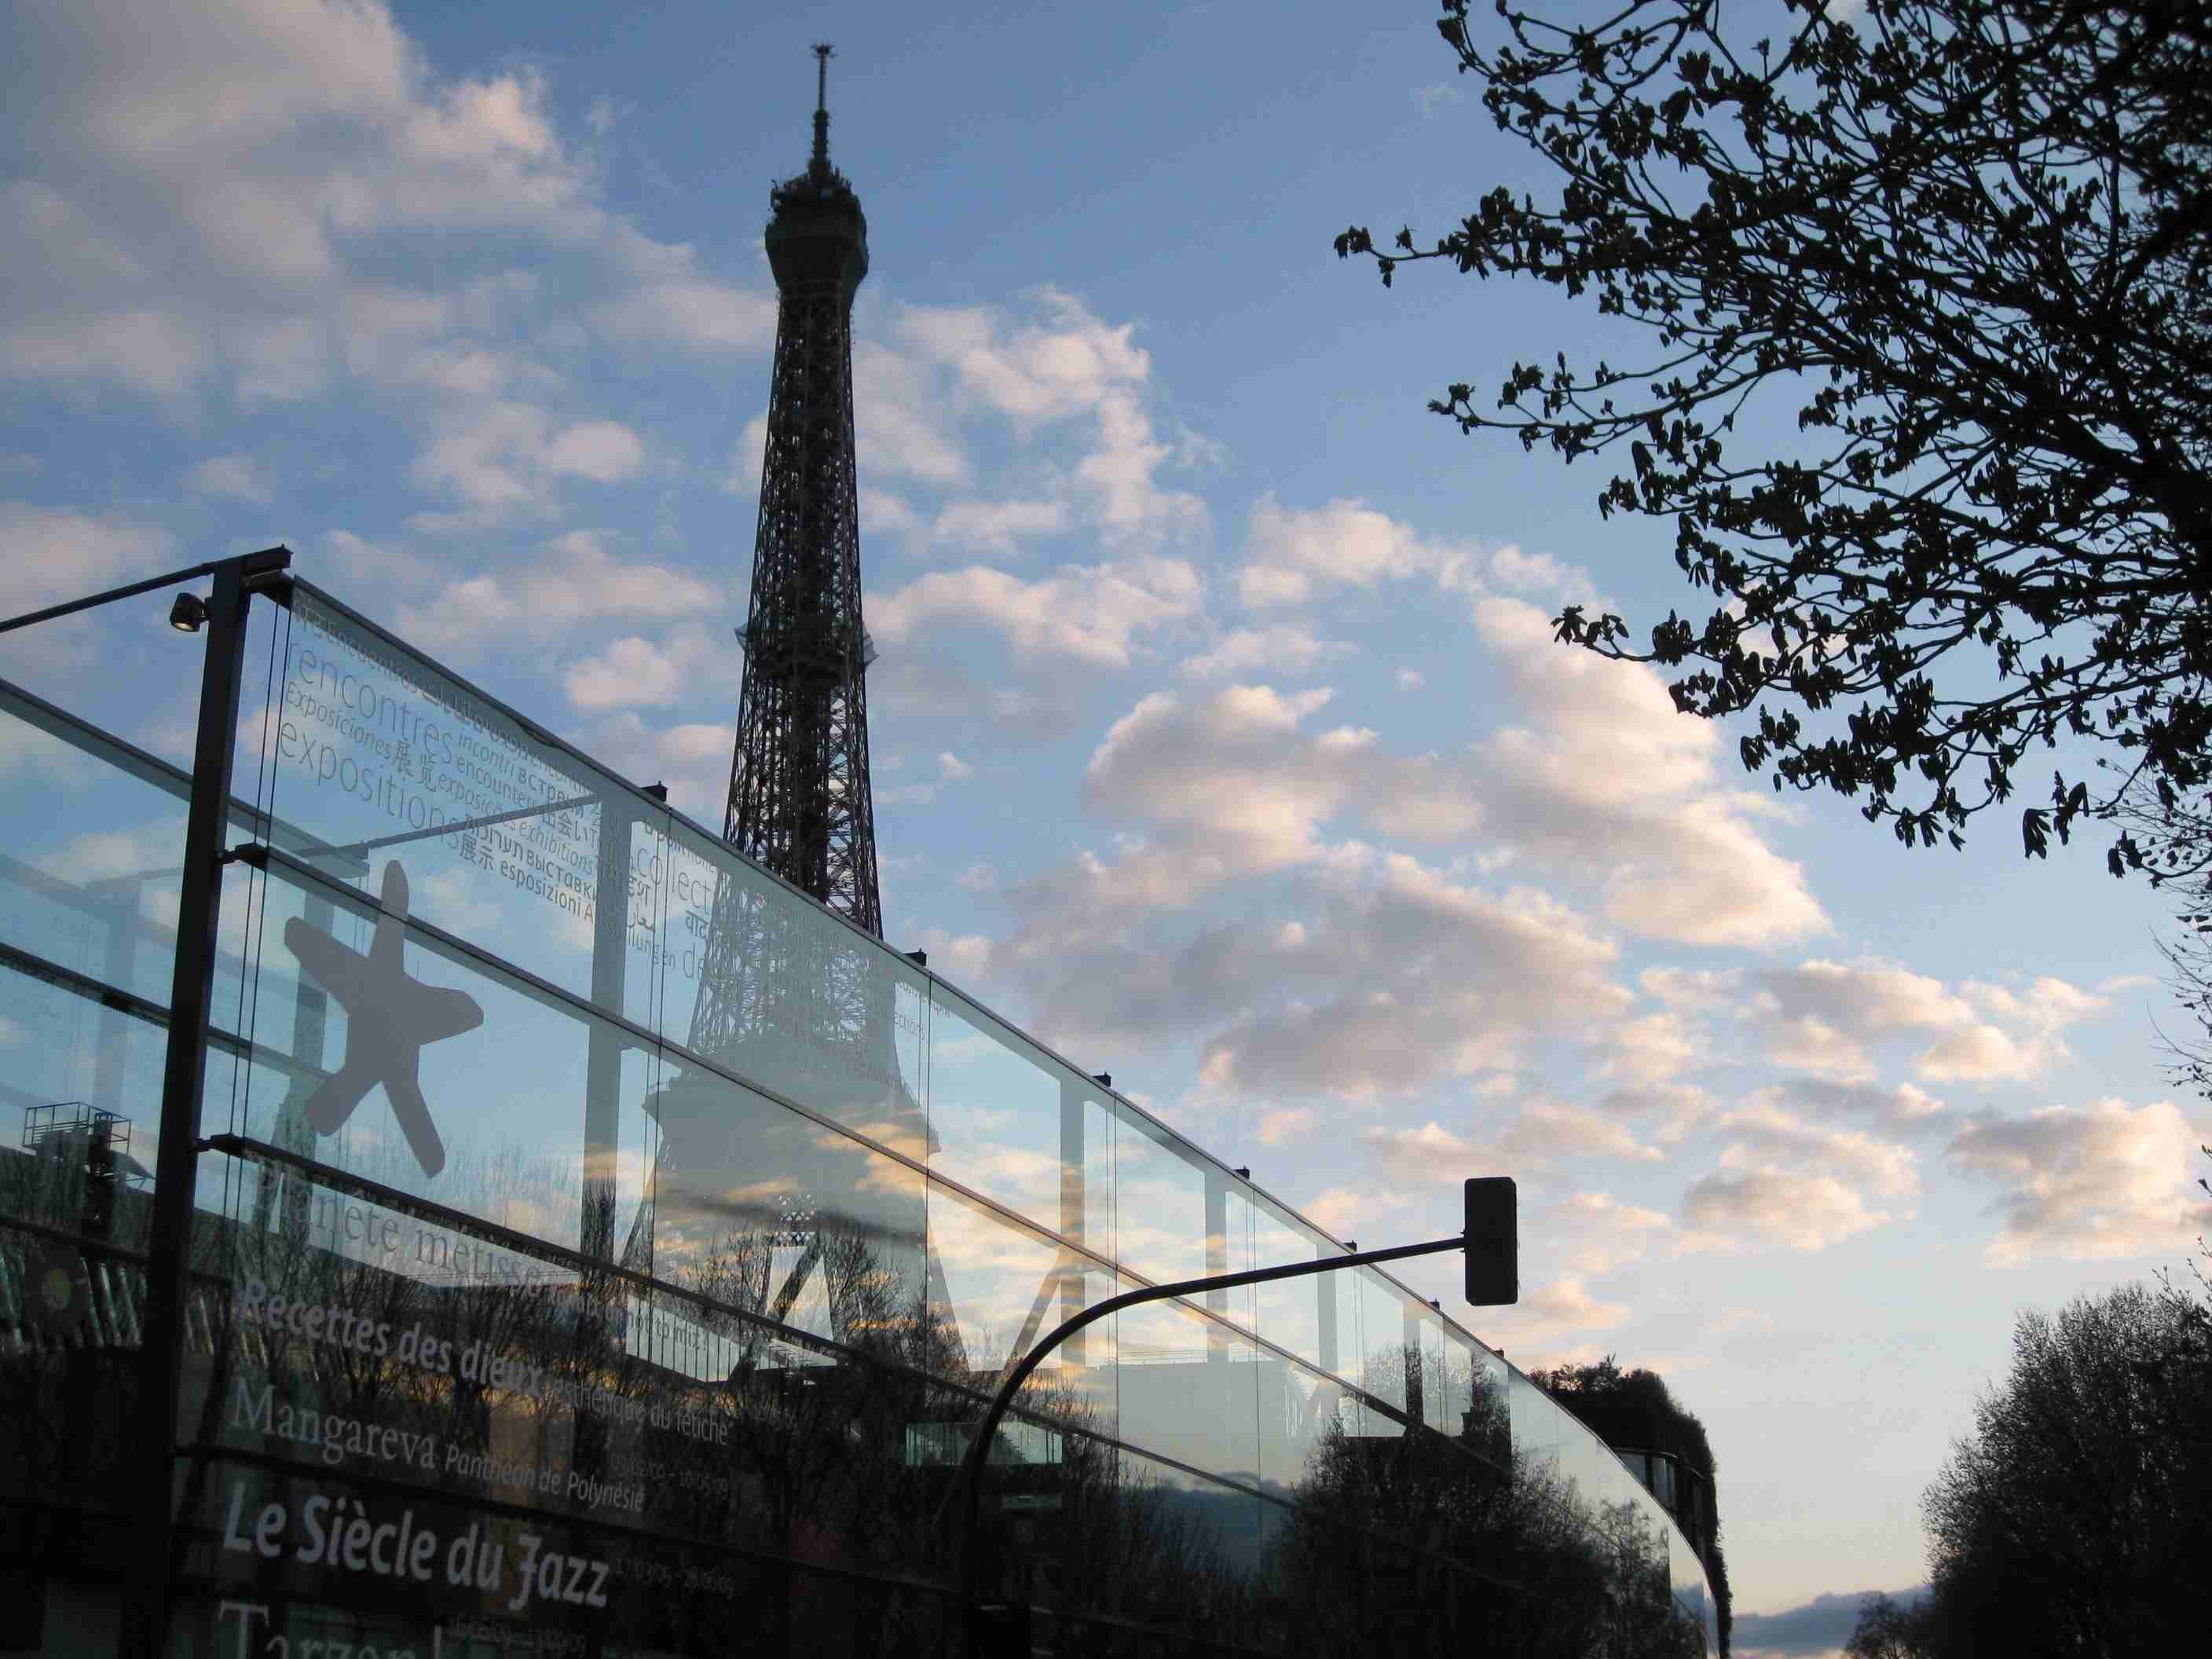 Quai Branly & Eiffel Tower, Paris